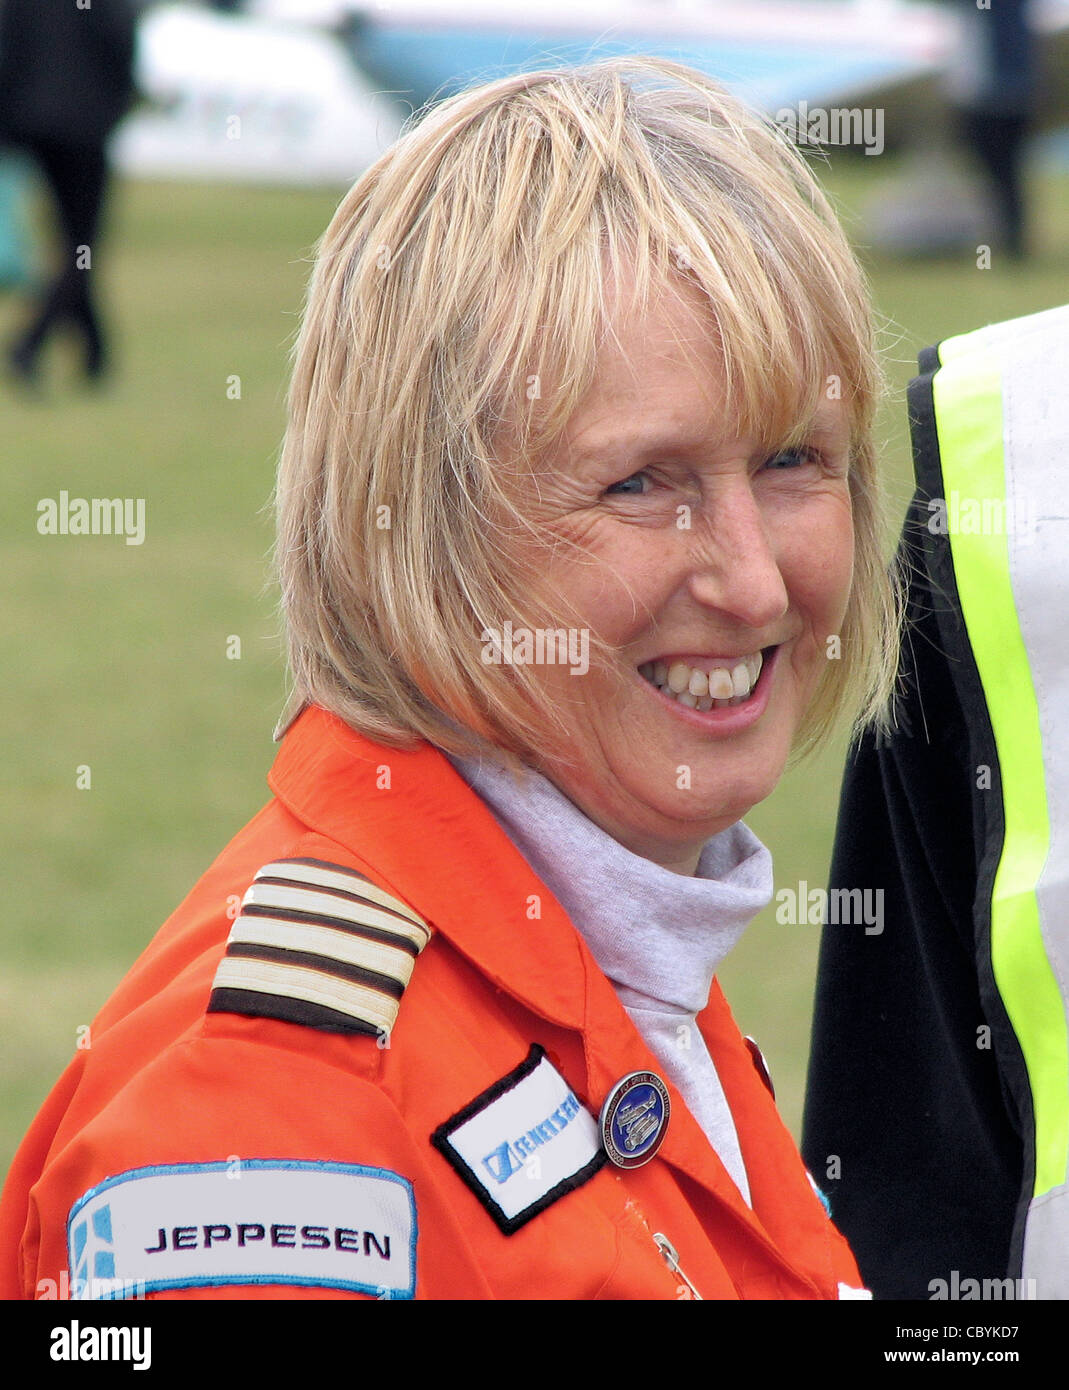 Polly Vacher at a Popular Flying Association Rally at Kemble Airport, Gloucestershire, England. - Stock Image